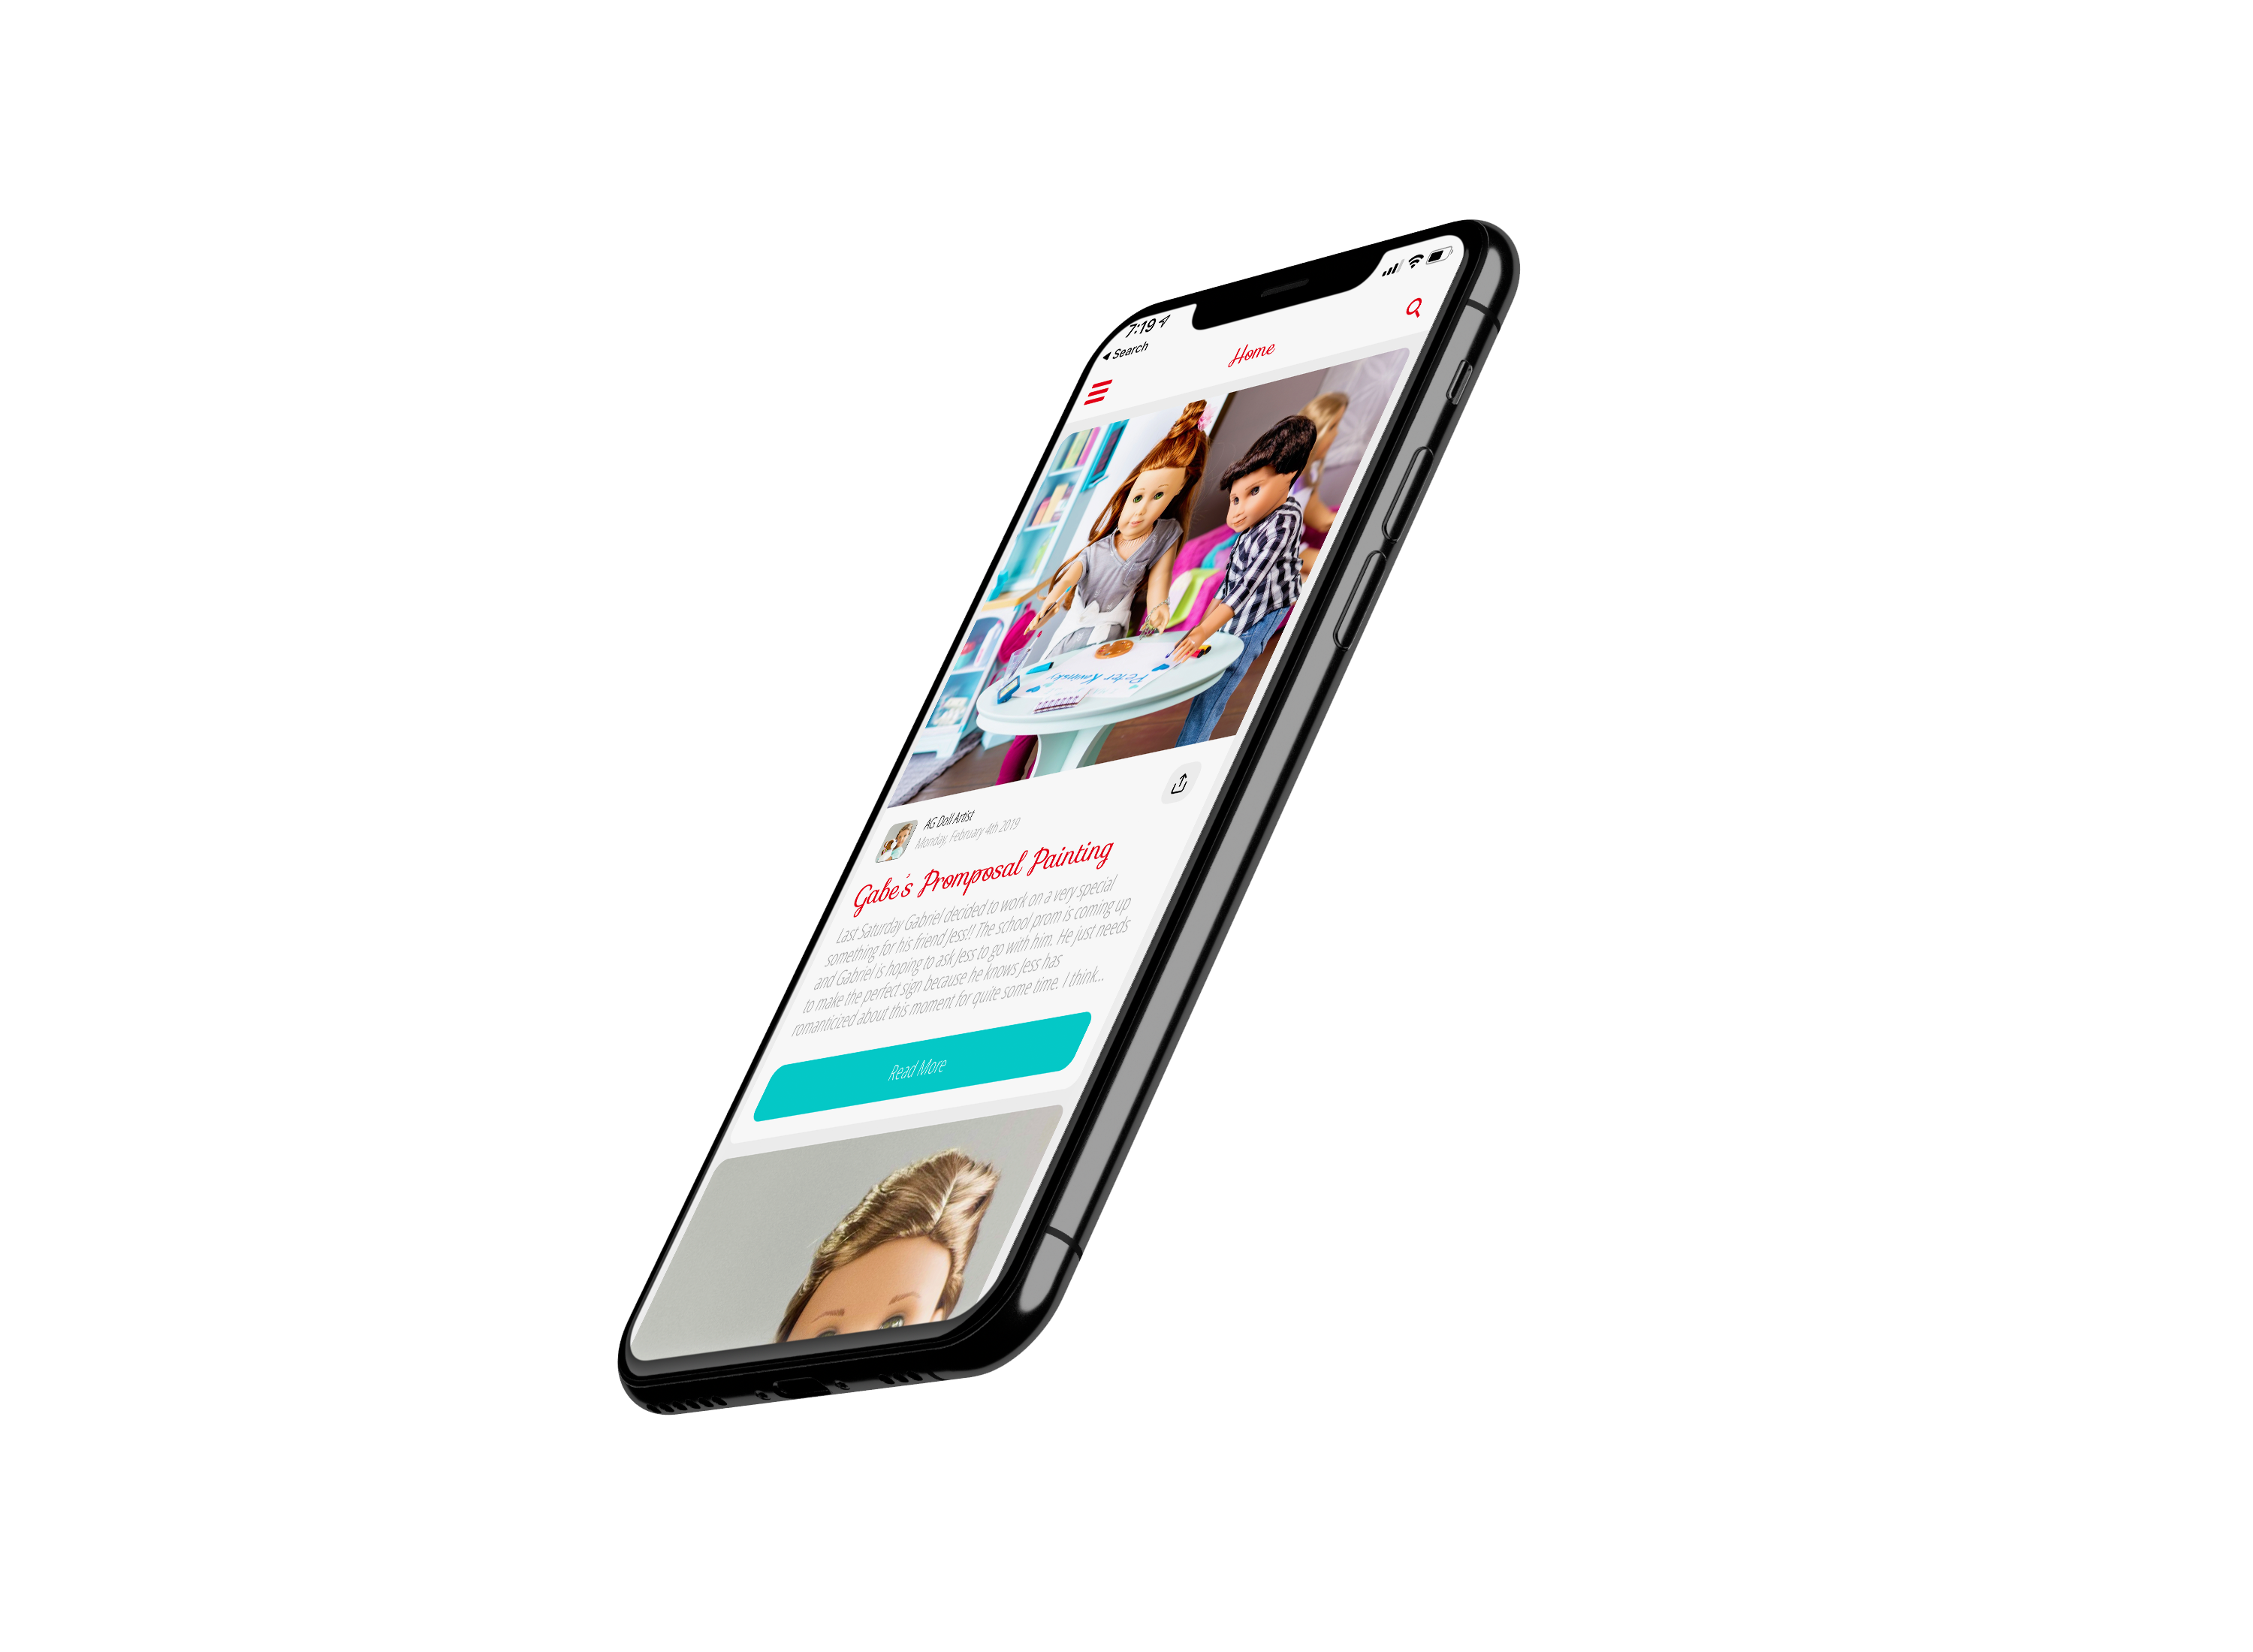 Image of the Small Dolls in a Big World app displayed on a mockup of an iPhone 11.